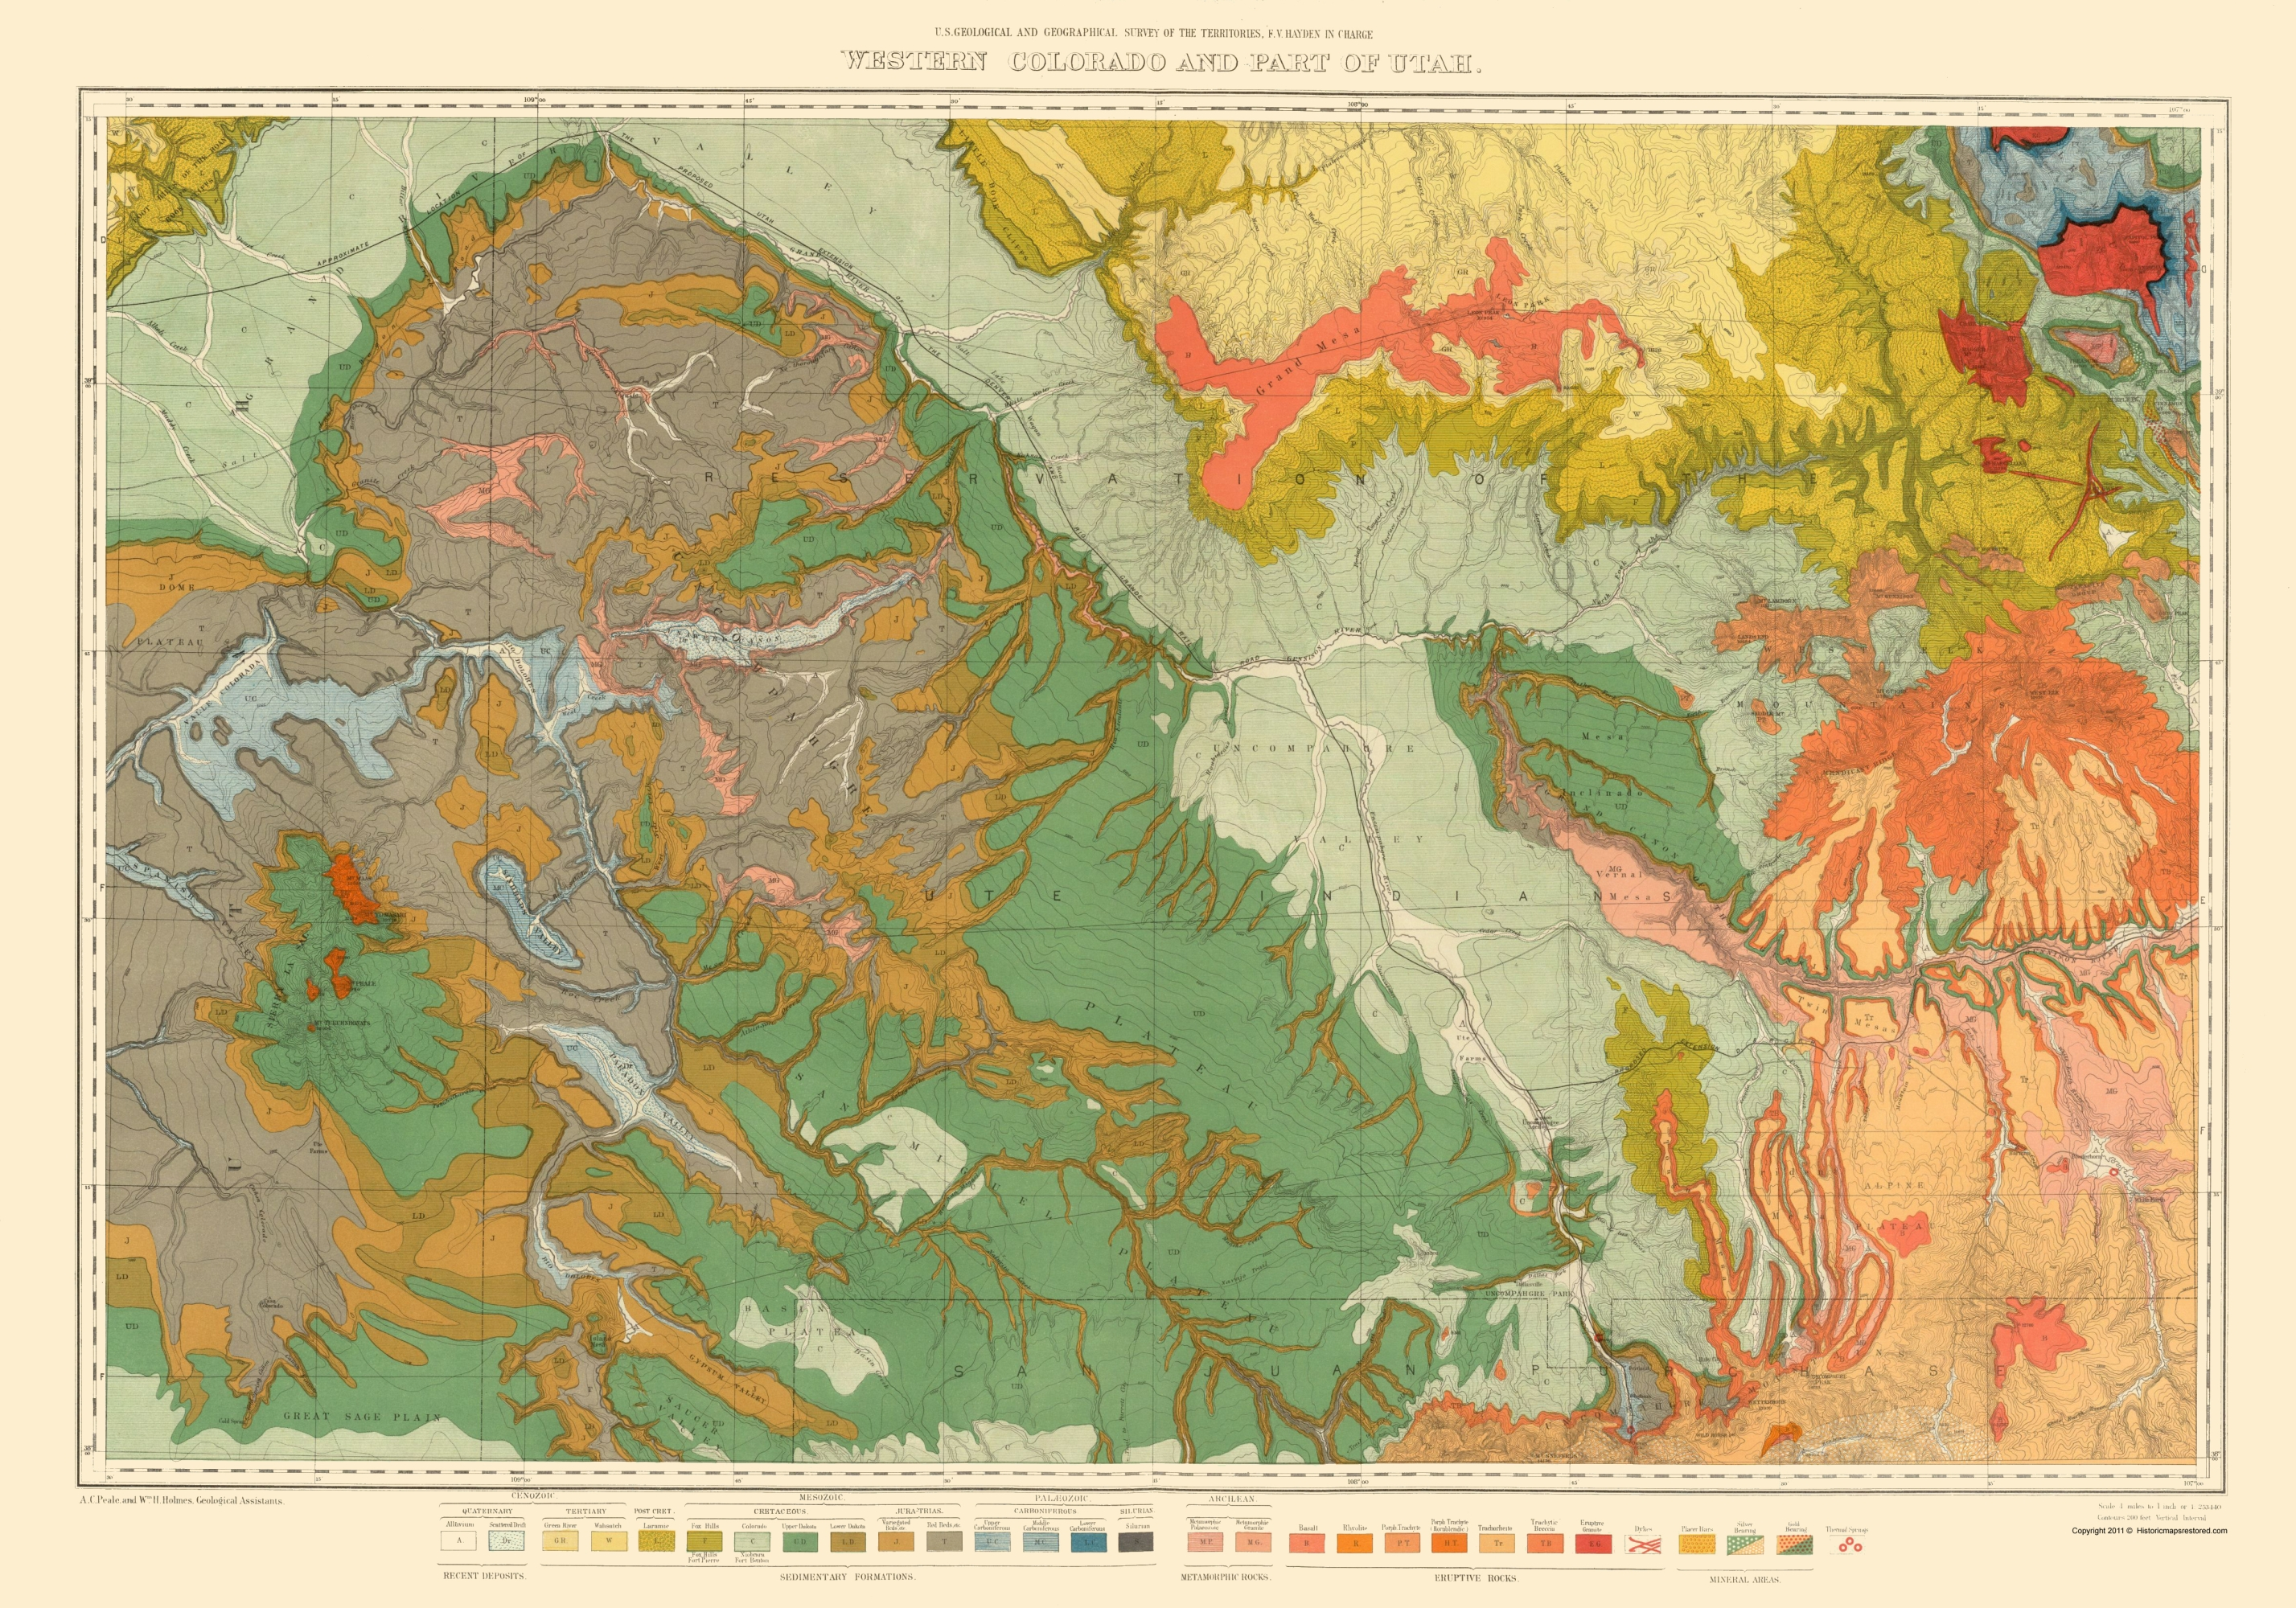 Old Topographical Map - West Colorado, Utah 1881